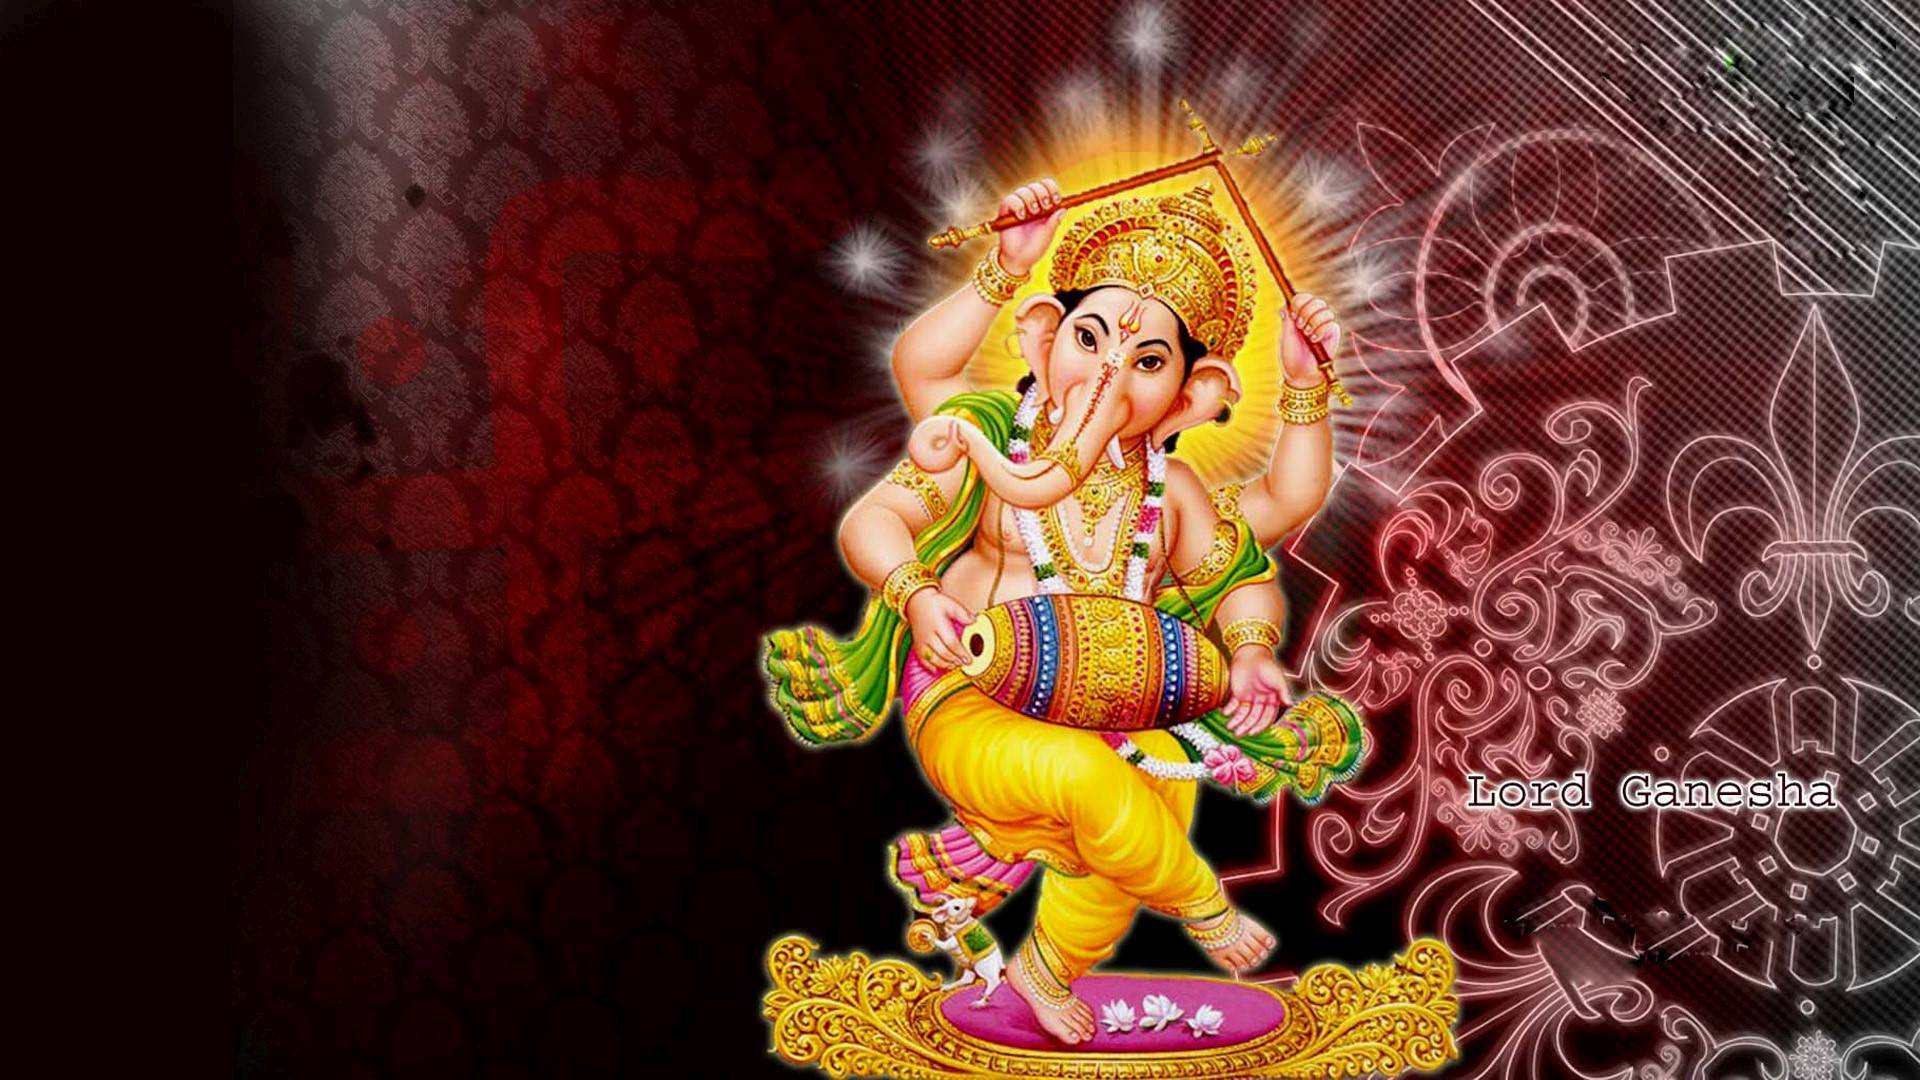 lord ganesha 1080p hindu god hd desktop wallpapers | god hd wallpapers